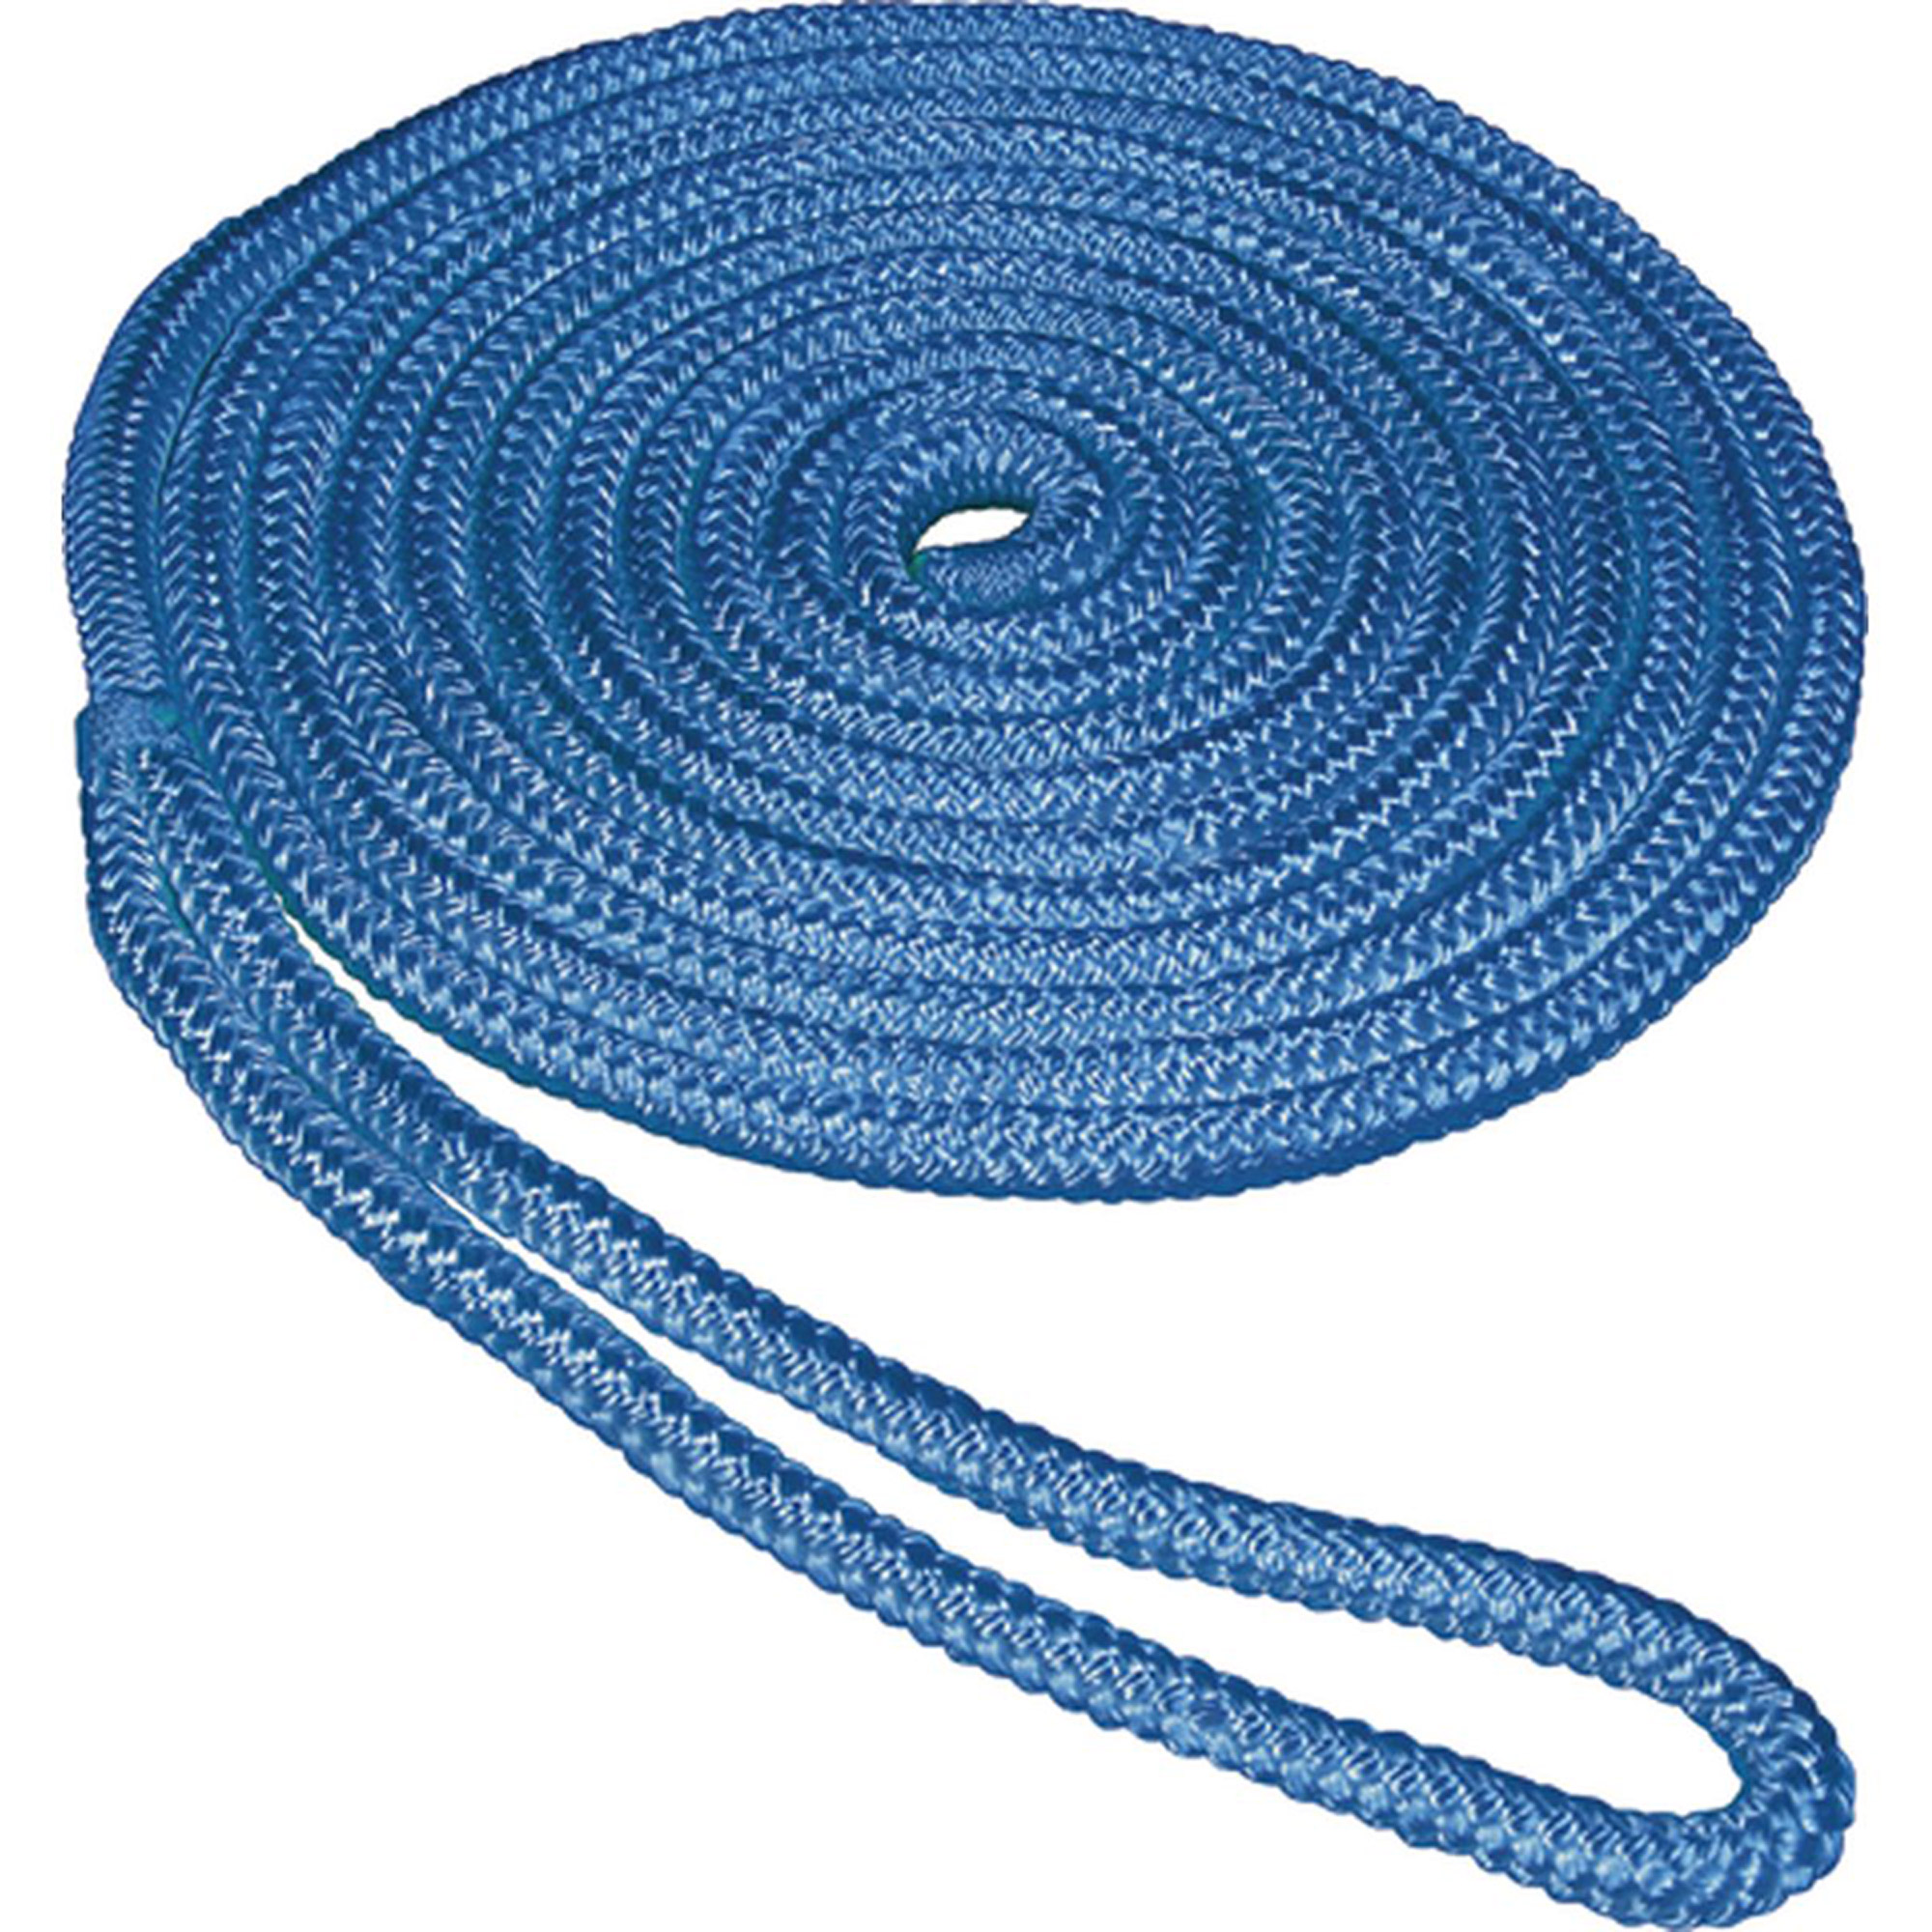 "Click here to buy SeaSense Double Braid Nylon Dock Line, 1 2"" x 25', 12"" Eye, Blue by Generic."